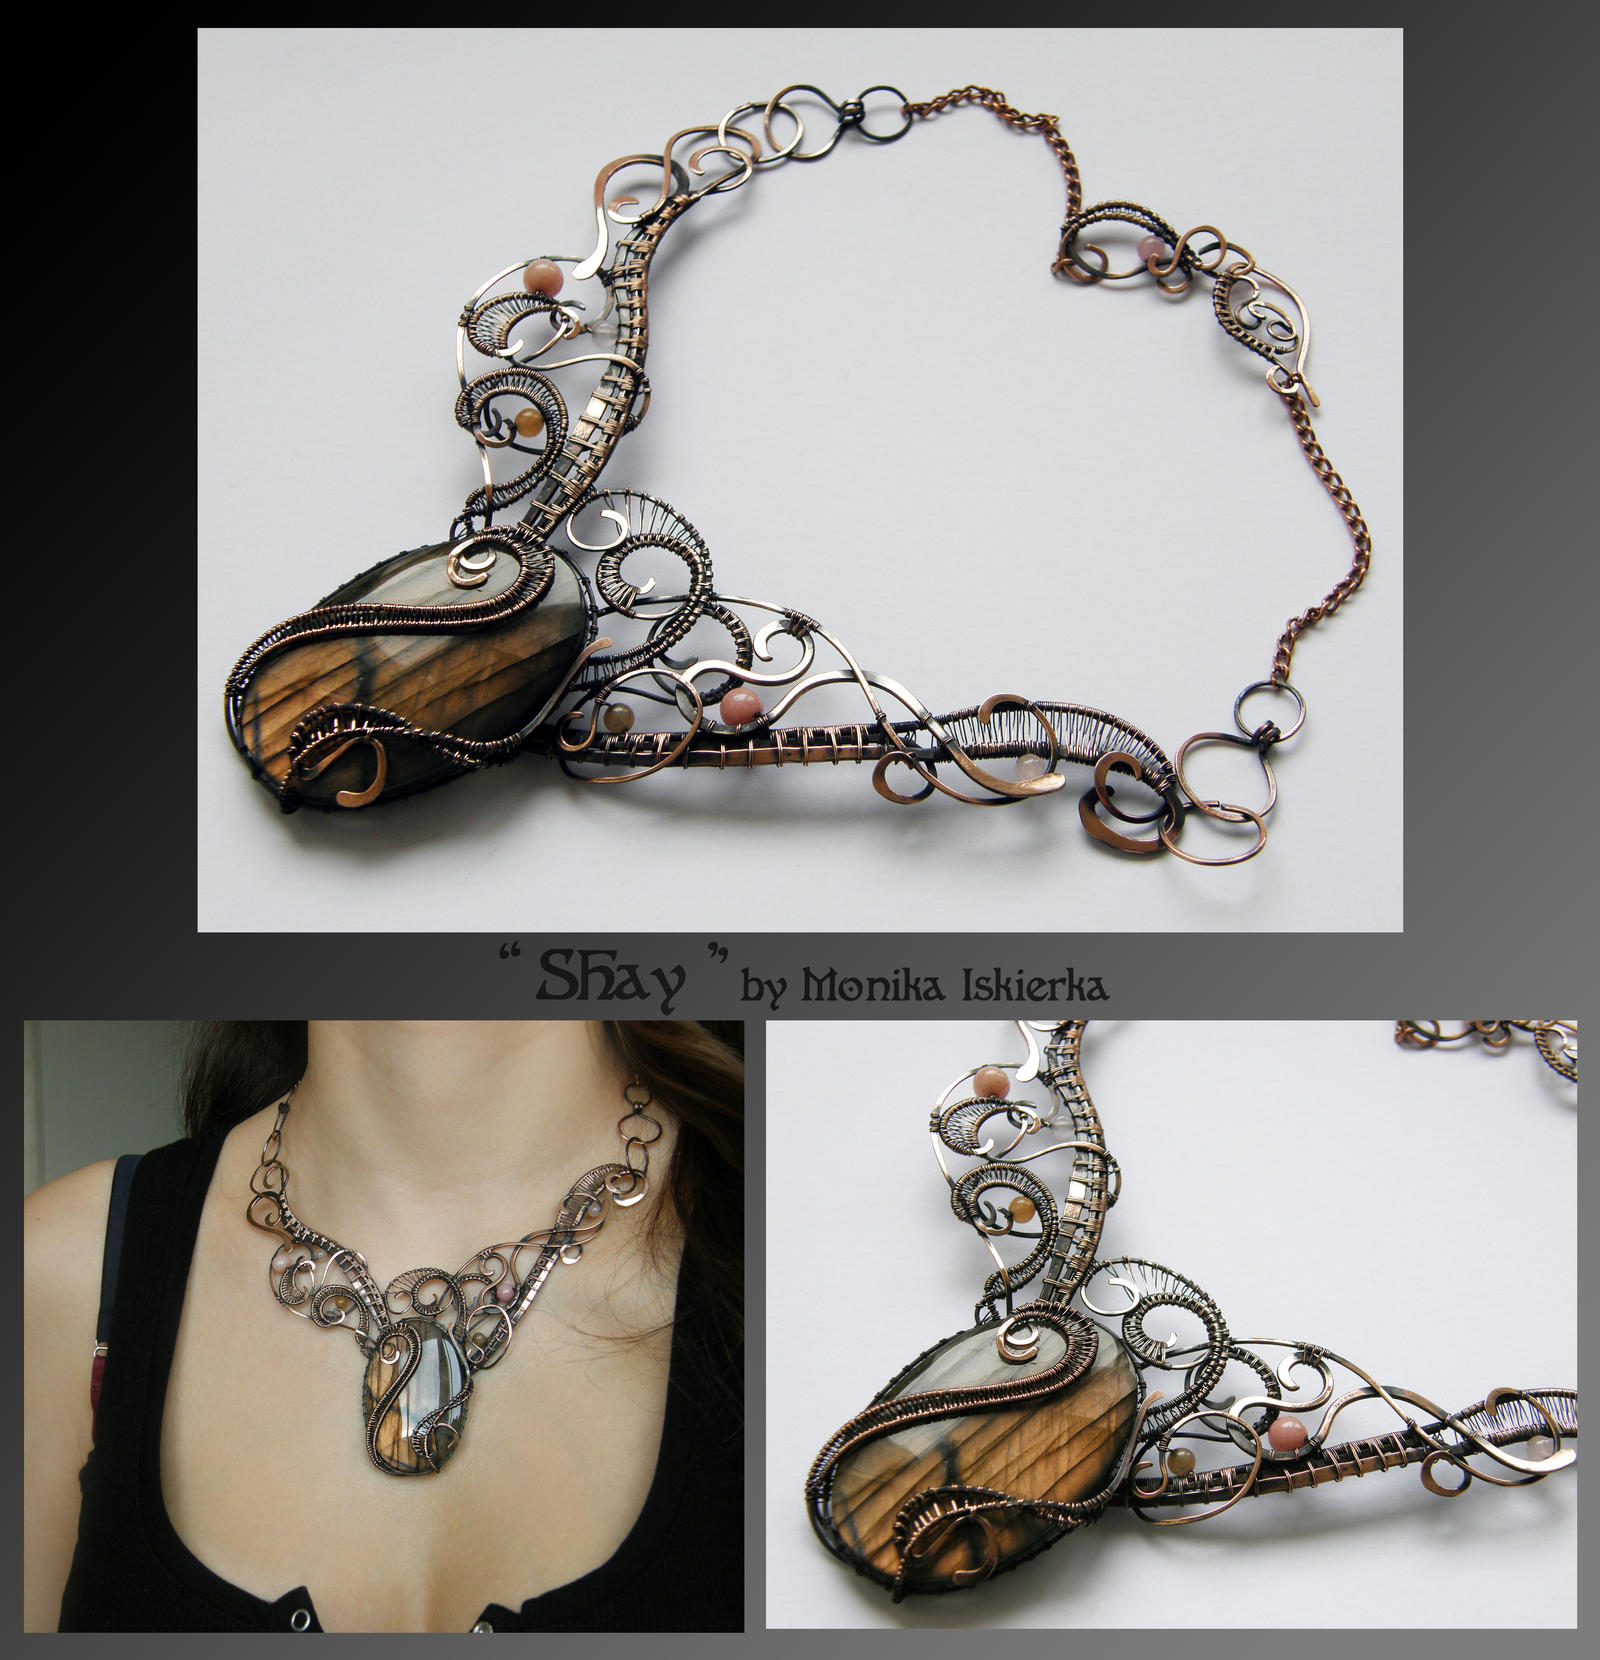 shay wire wrapped copper necklace by mea00 on deviantart